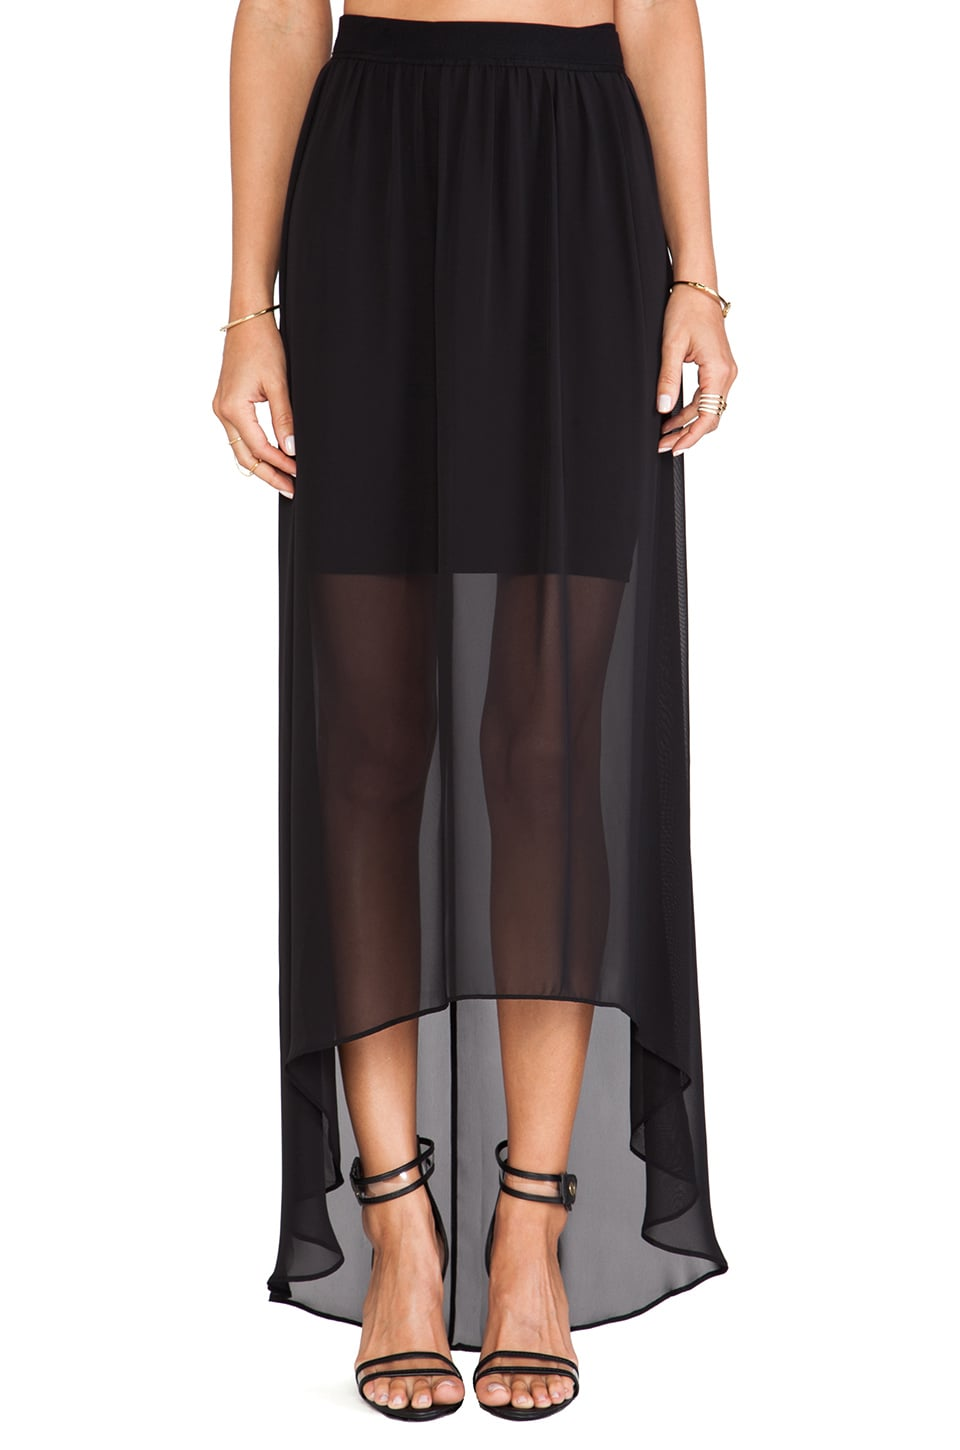 Alice + Olivia Rome Sheer Maxi Skirt in Black